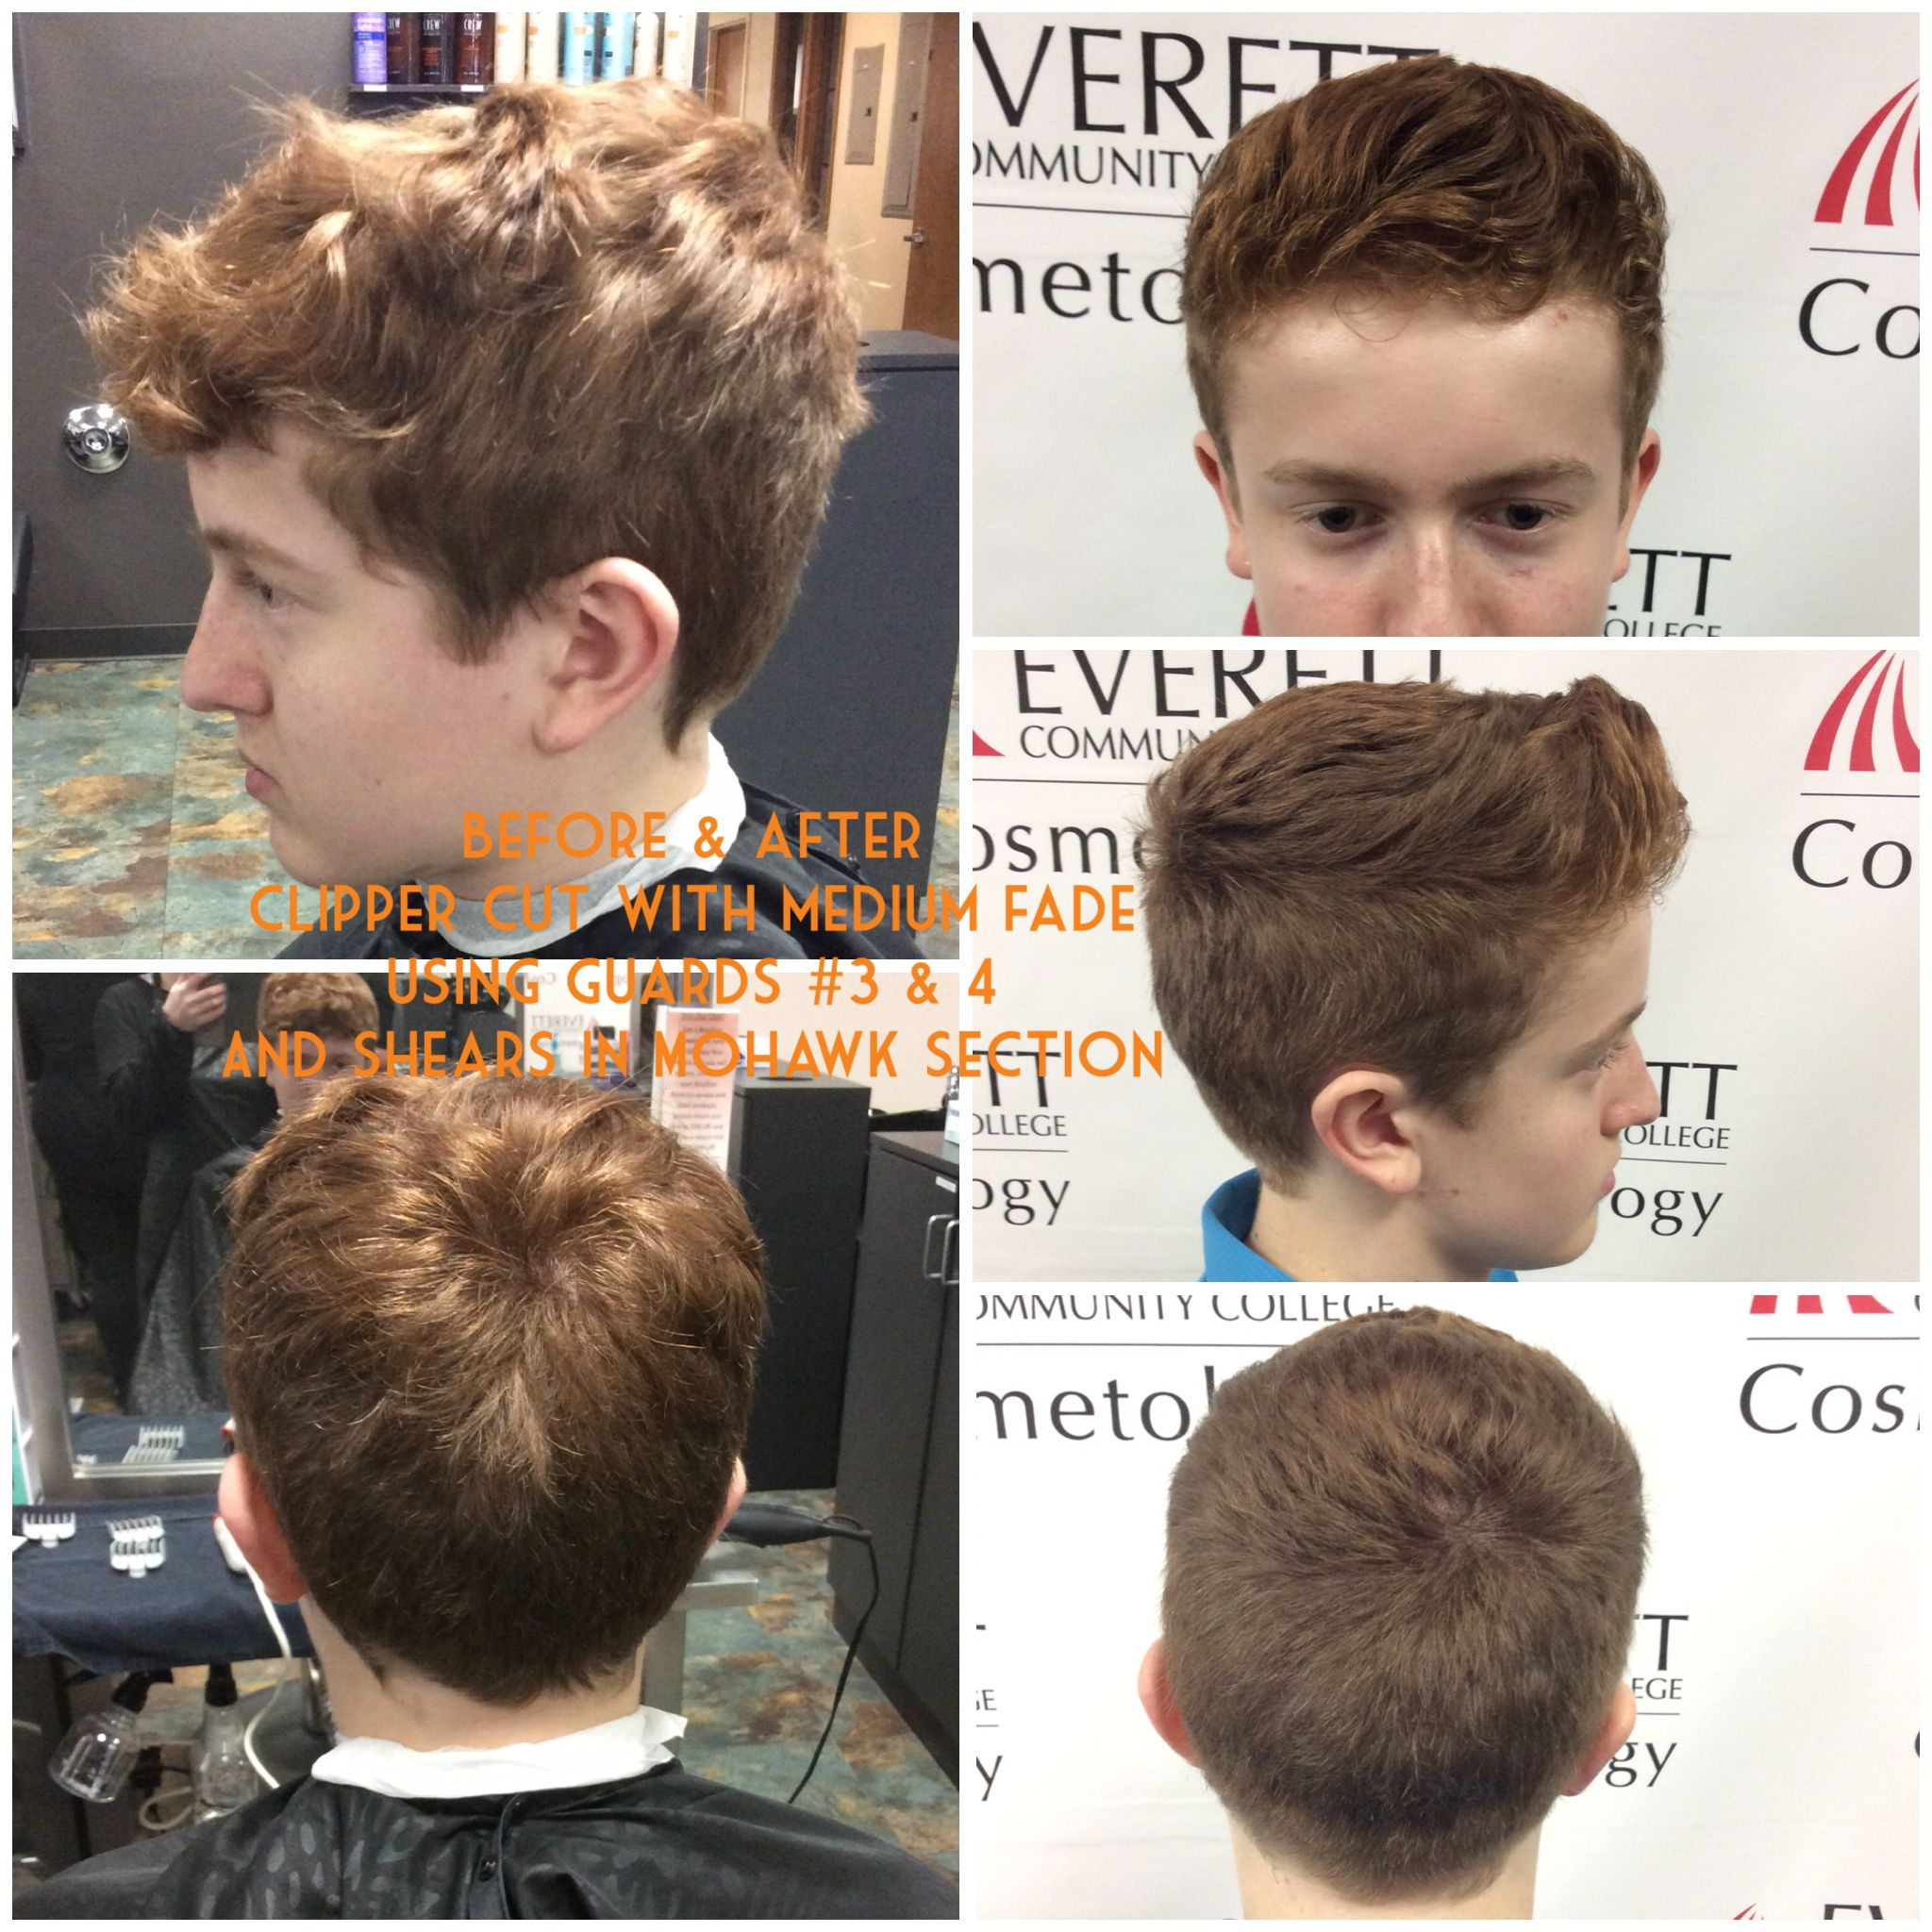 Haircut With Medium Fade Using Guards 3 And 4 And Shears On The Top